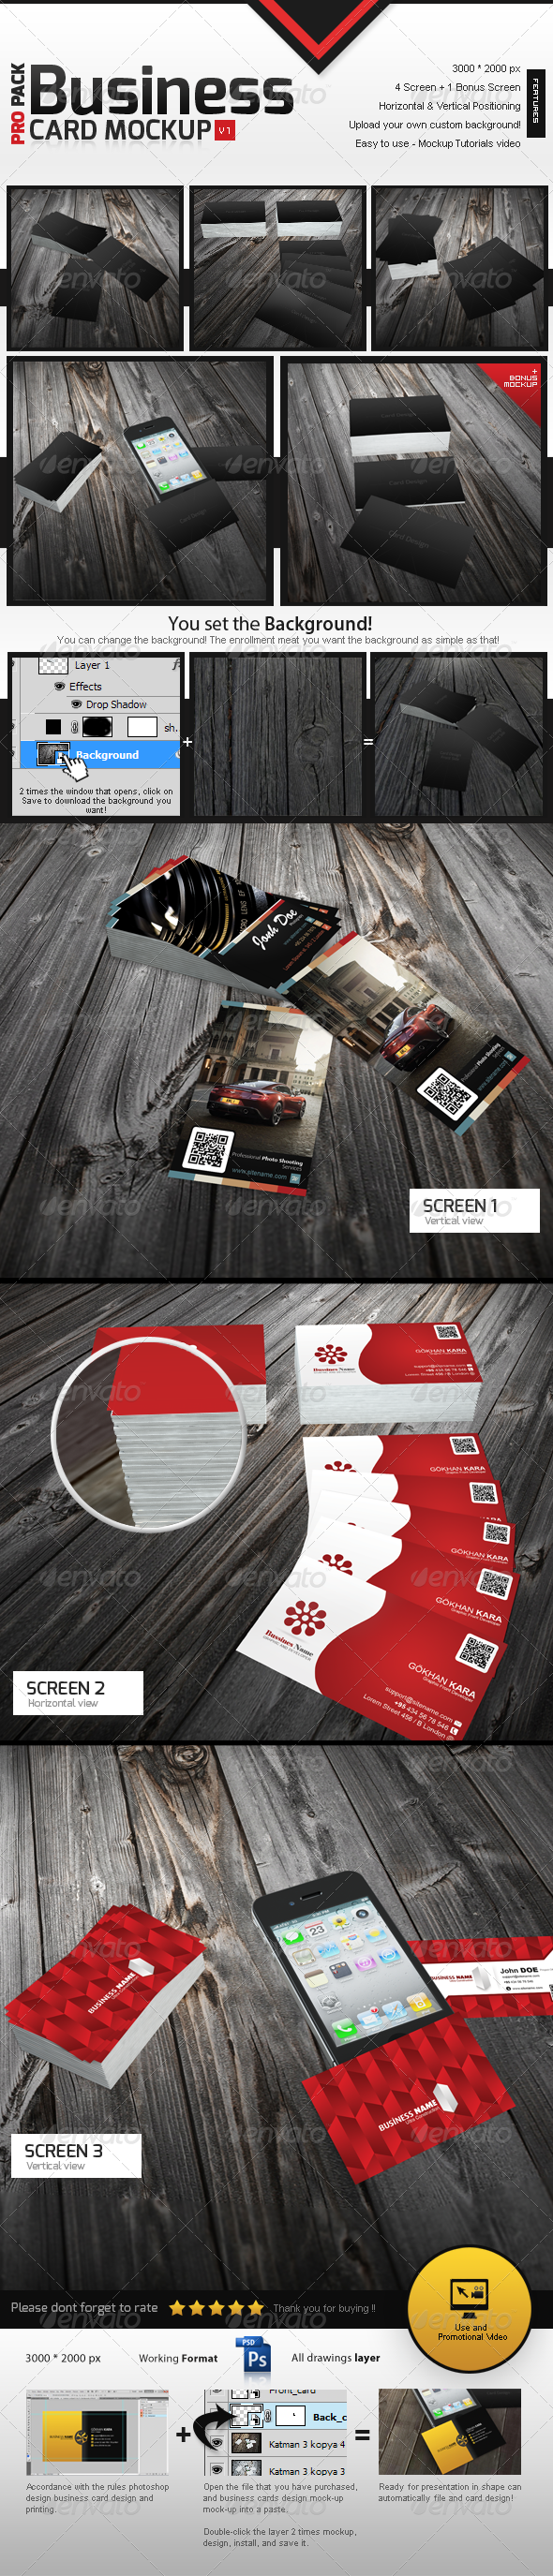 Business Card Mockup v1 - Print Product Mock-Ups